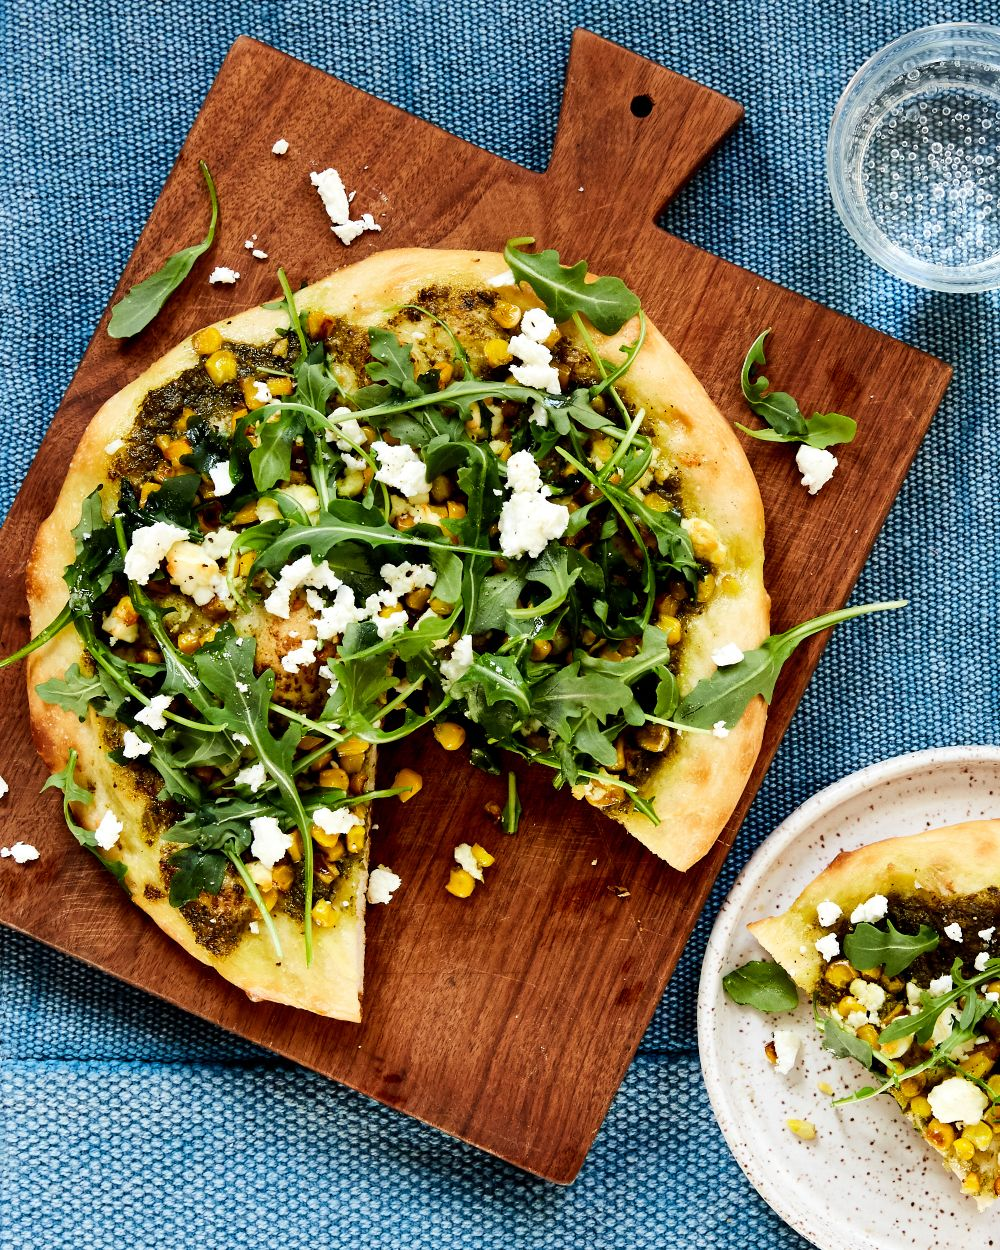 Five-Ingredient Dinner: Pesto Pizza With Fixins | A Cup of Jo